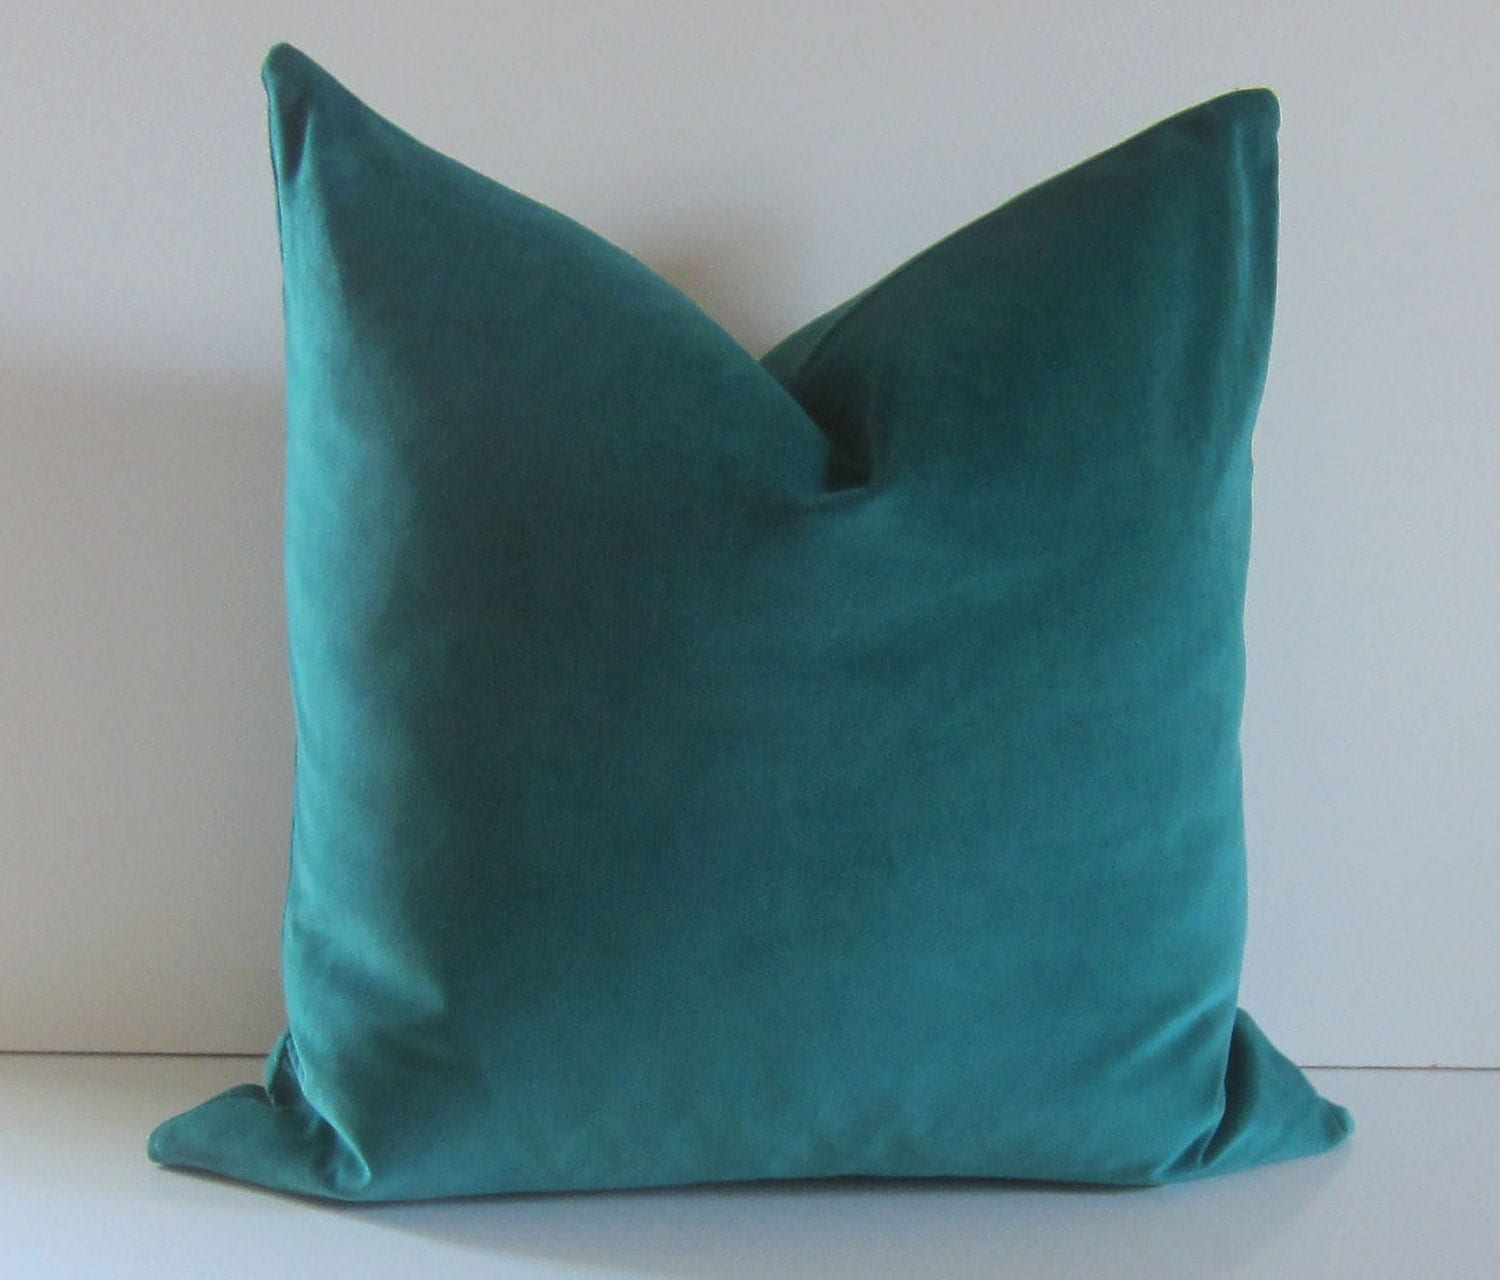 Decorative Pillows With Teal : Decorative Pillow Cover 20 inch teal velvet cotton